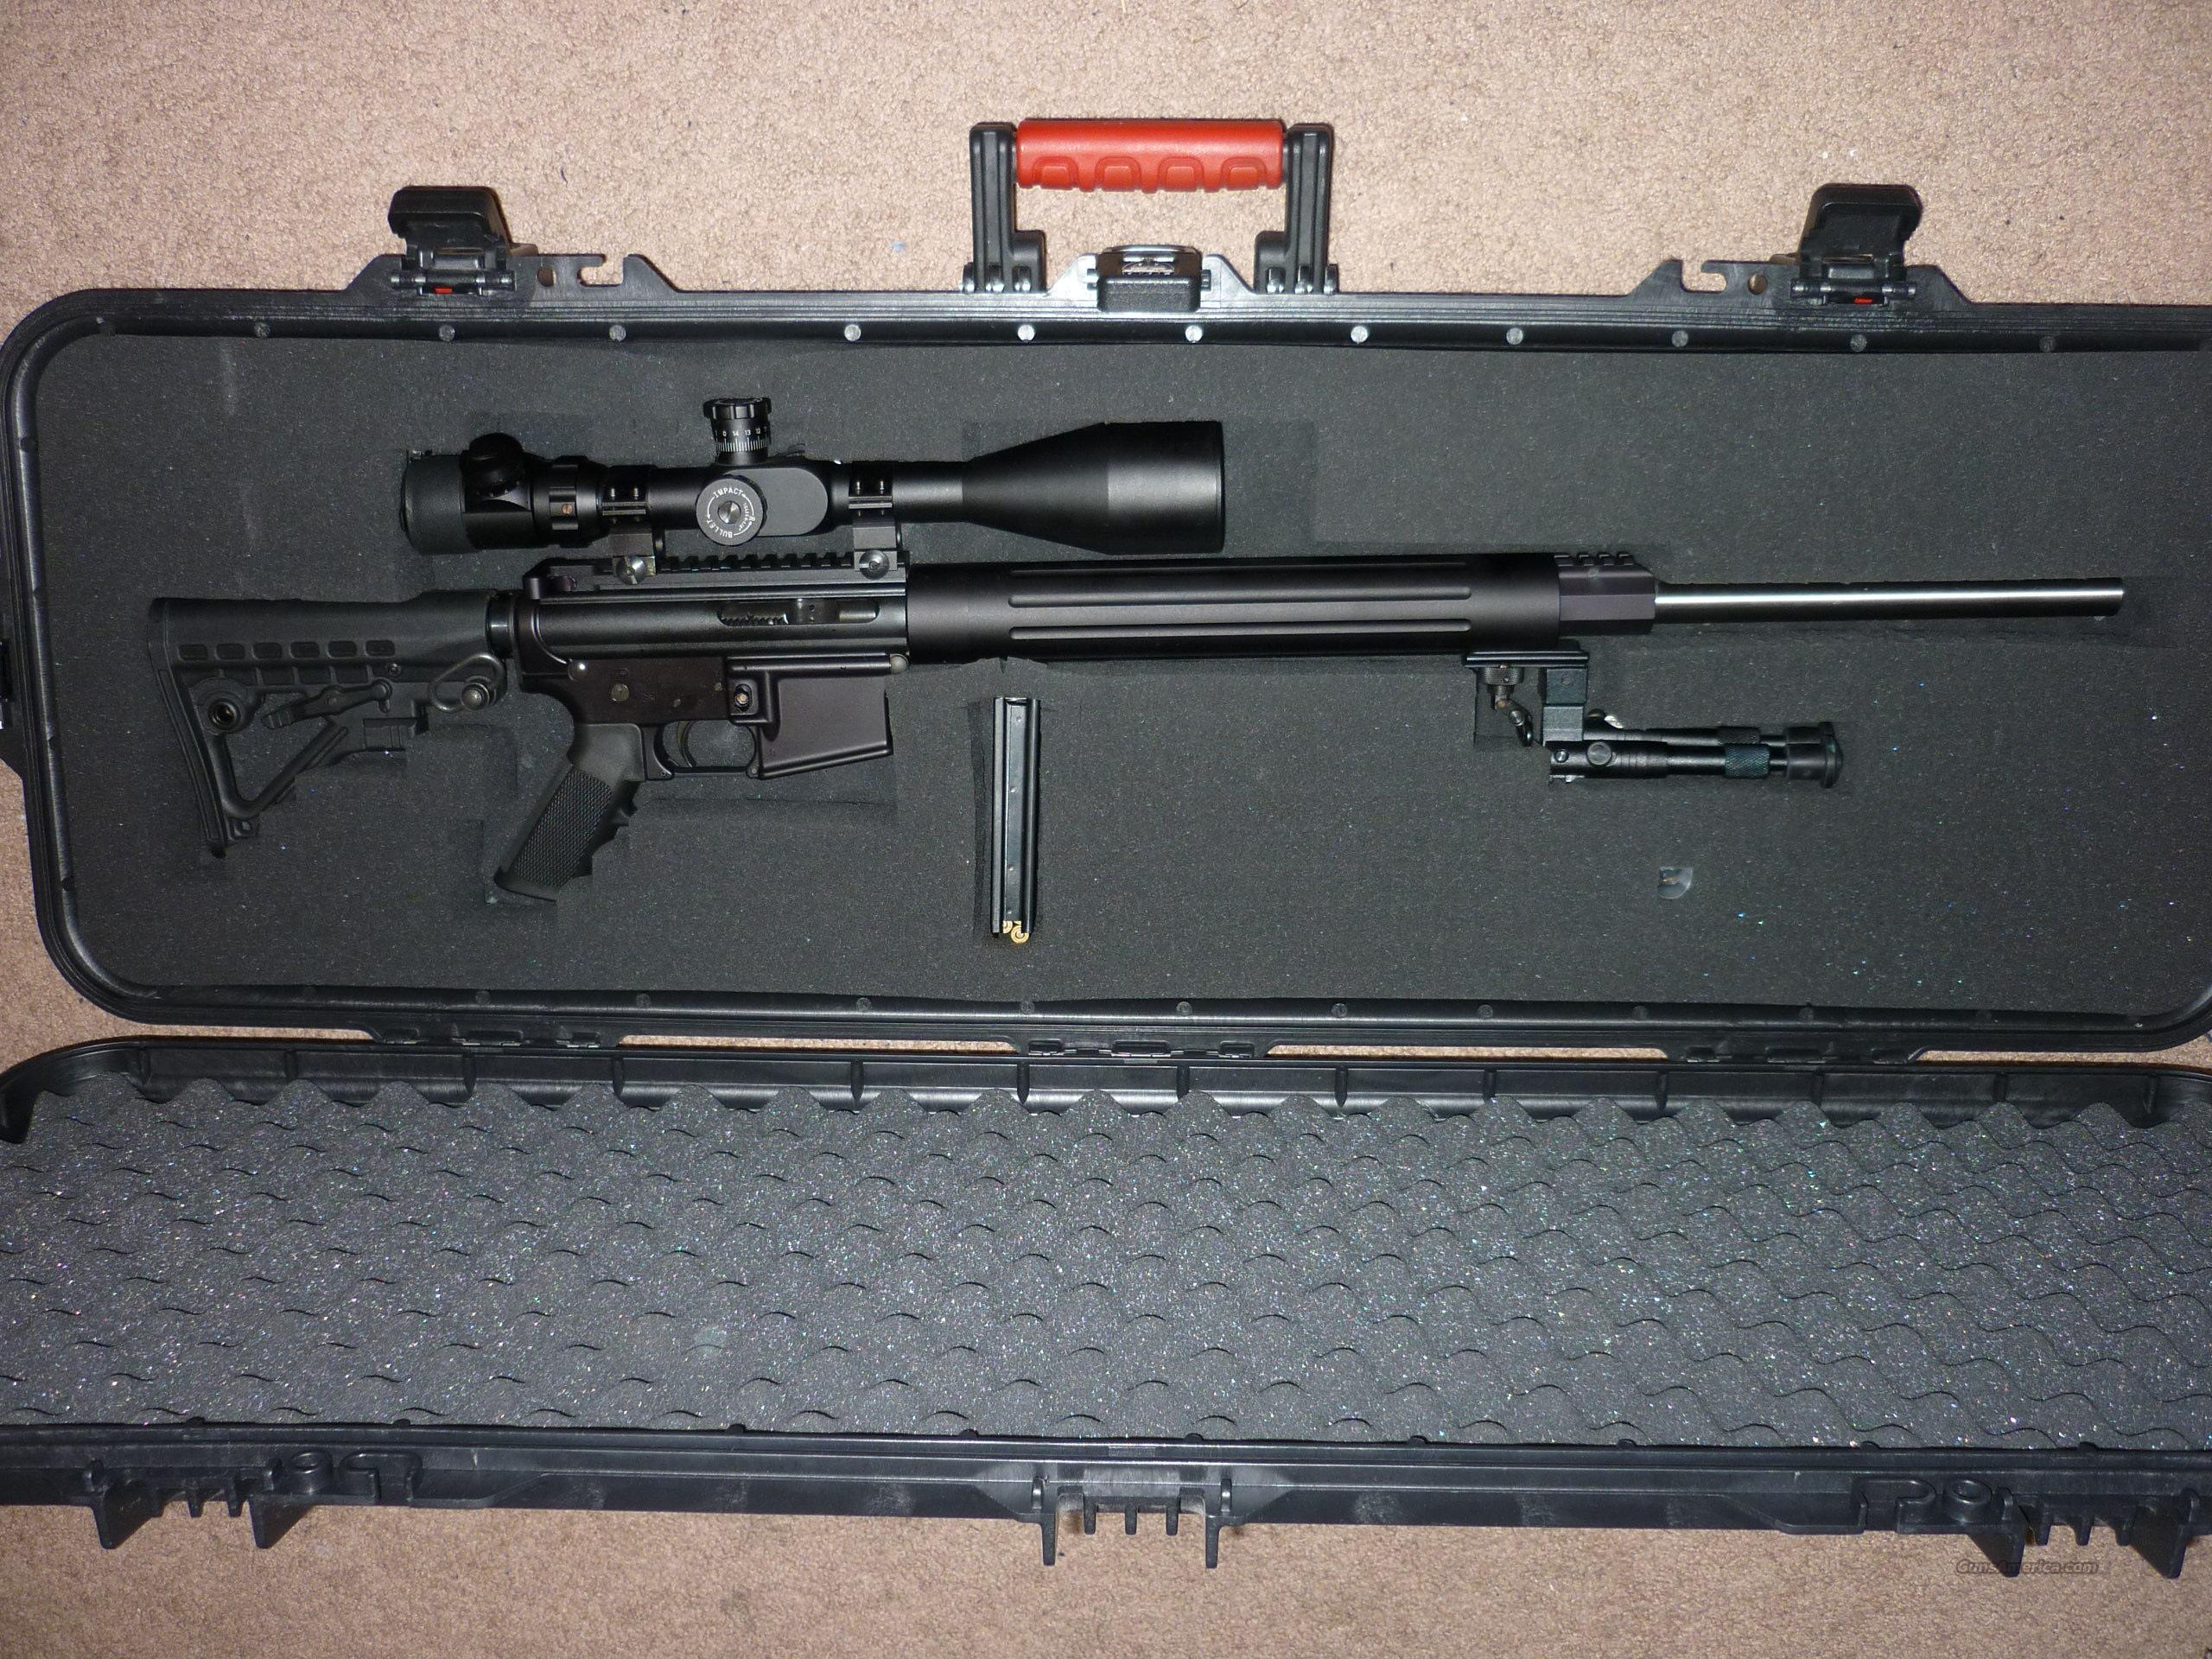 AR-15 based Sniper Rifle for sale